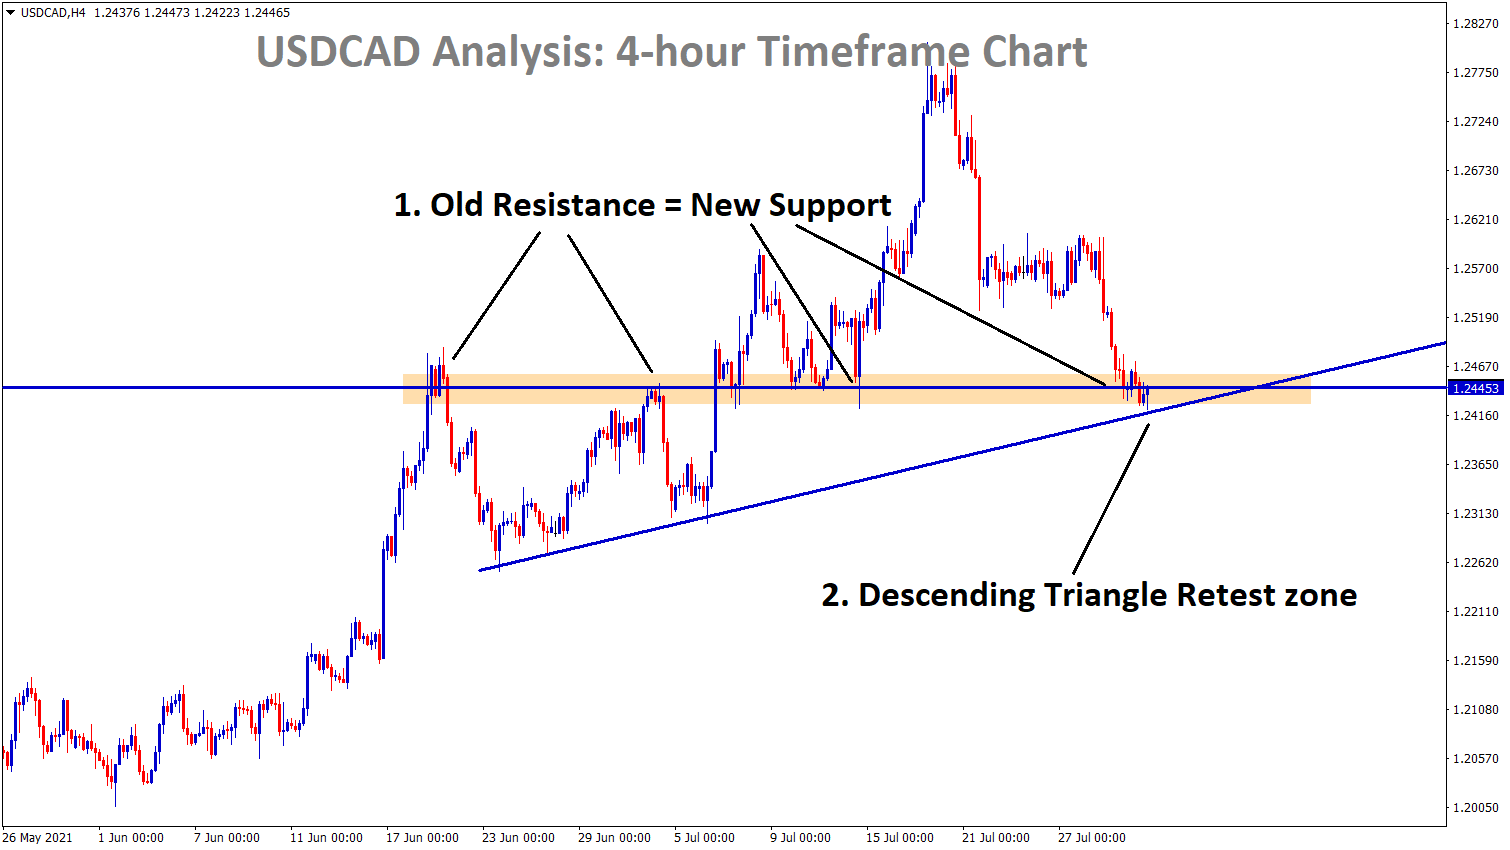 USDCAD at the support zone and the Descending Triangle retest zone